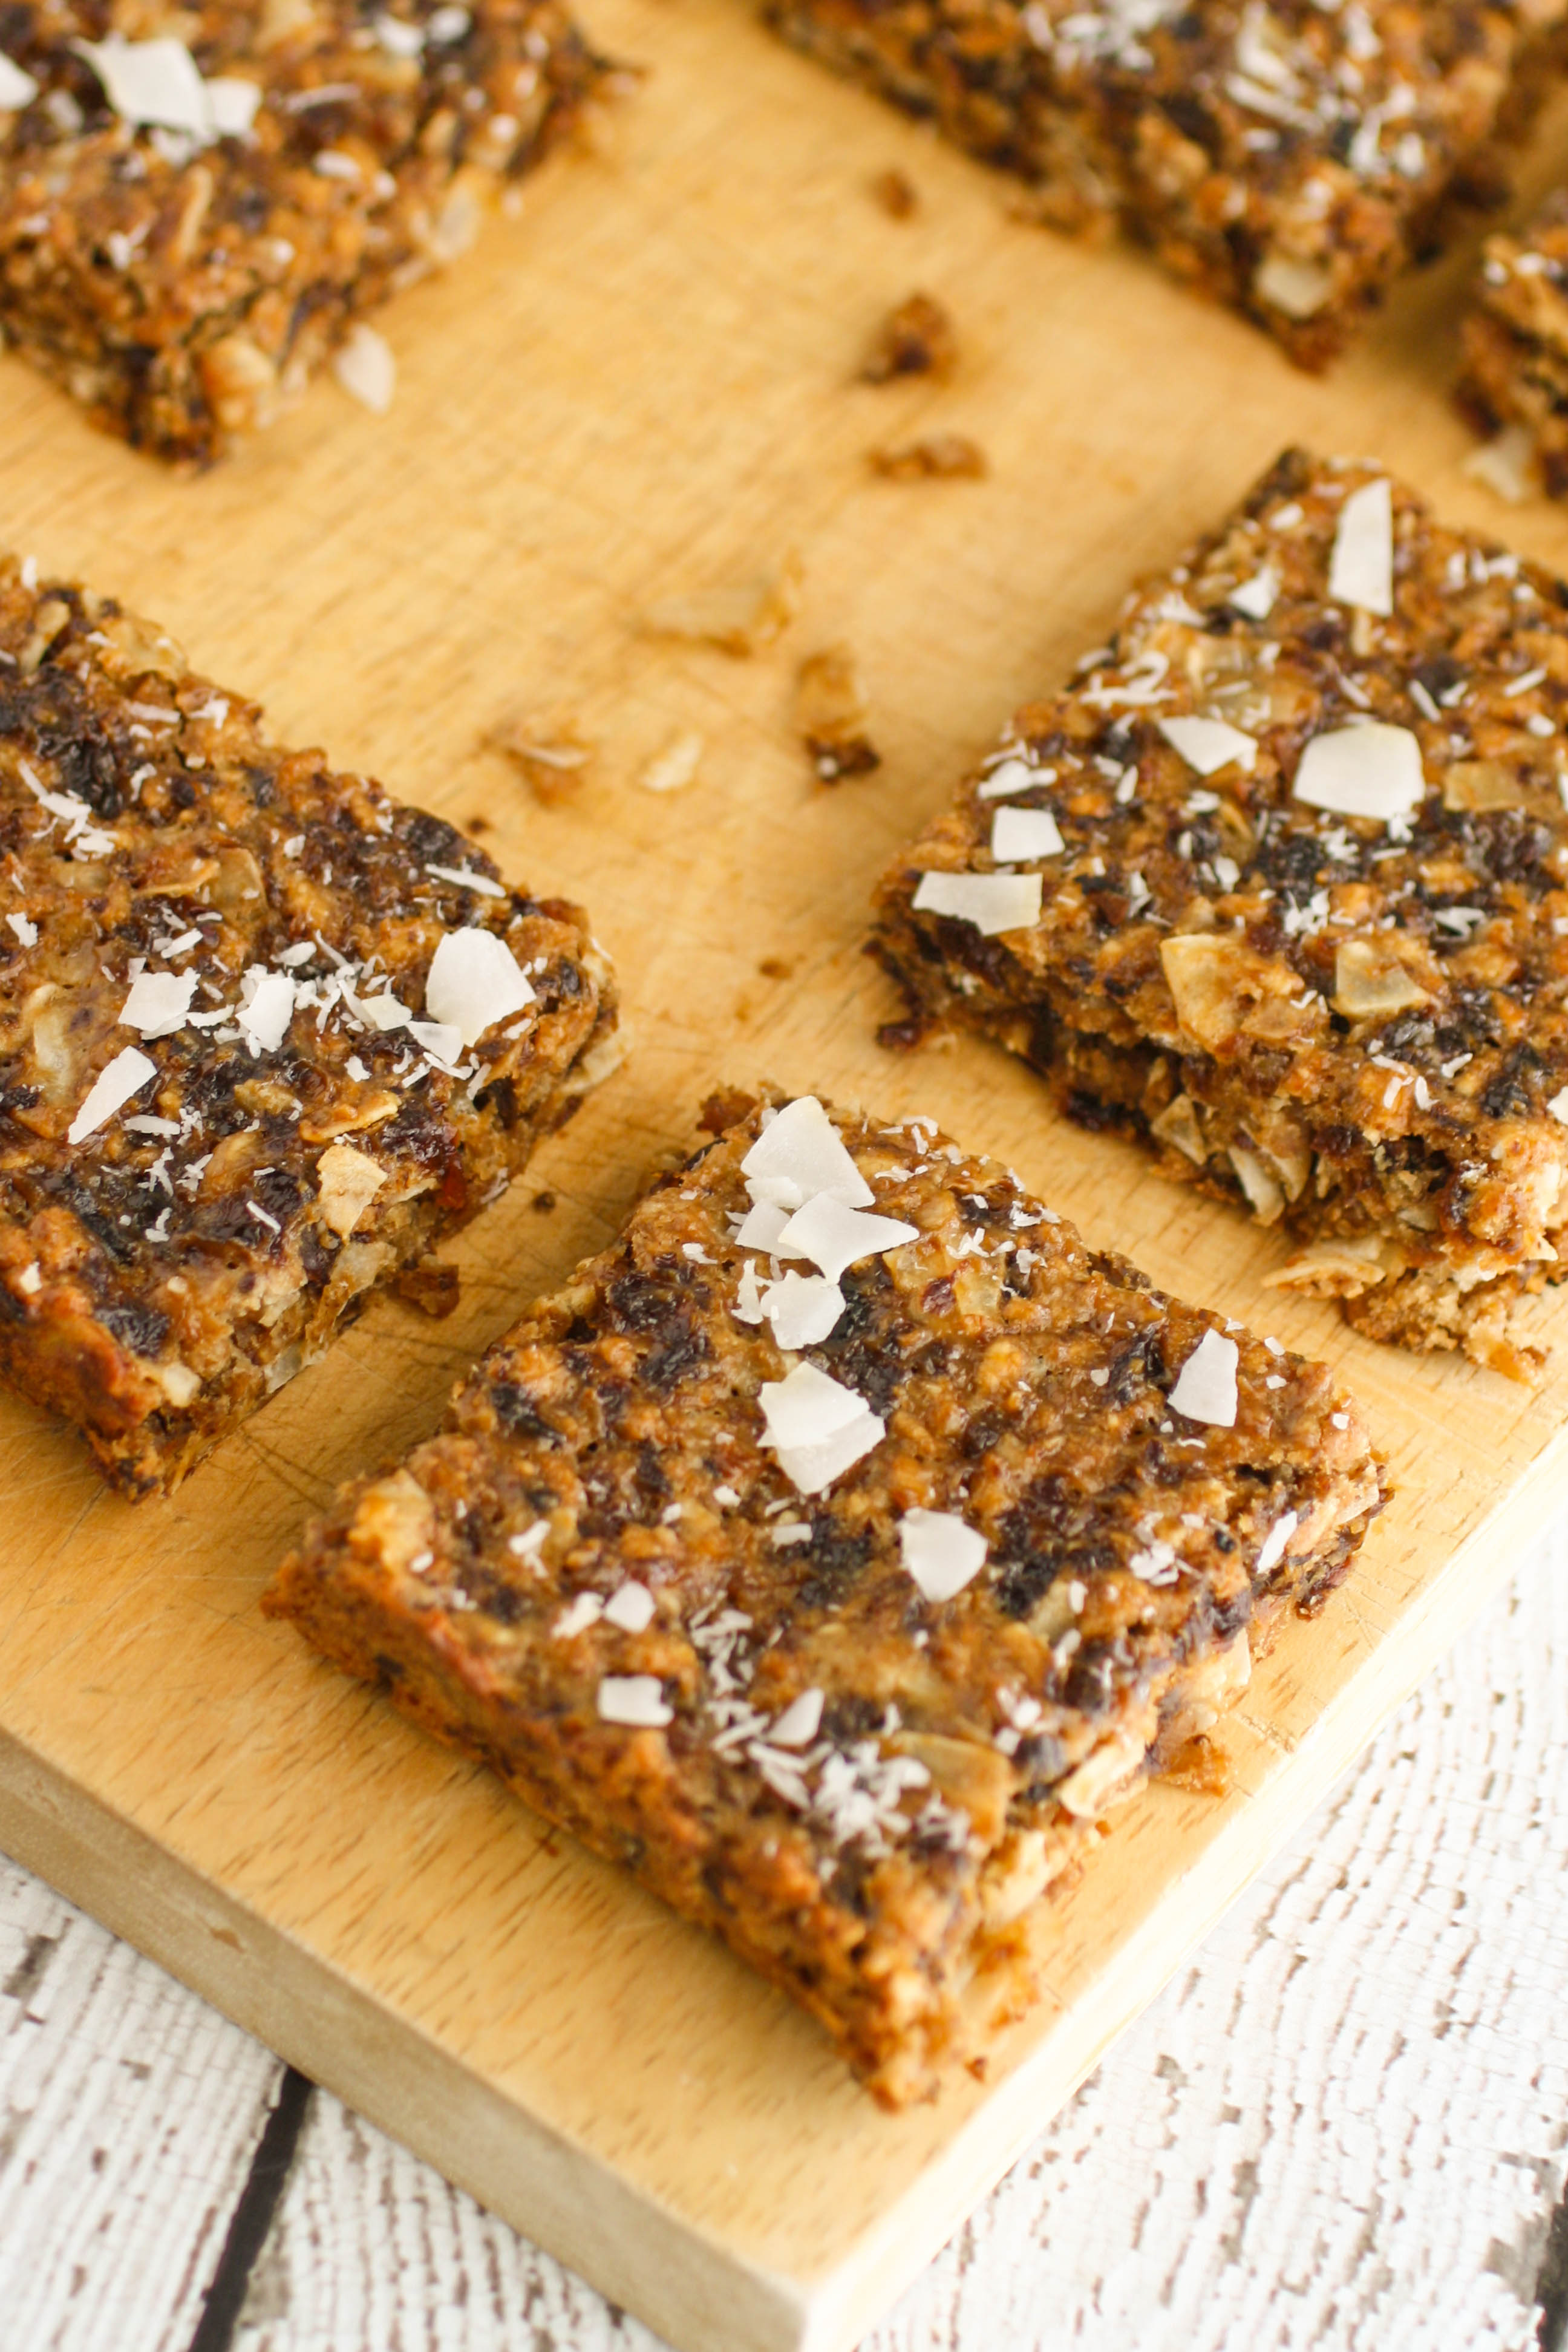 Chewy Coconut and Dried Fruit Bars are a great treat with a healthy vibe. You'll love these chewy coconut bars with dried fruit for their flavor and healthy vibe.